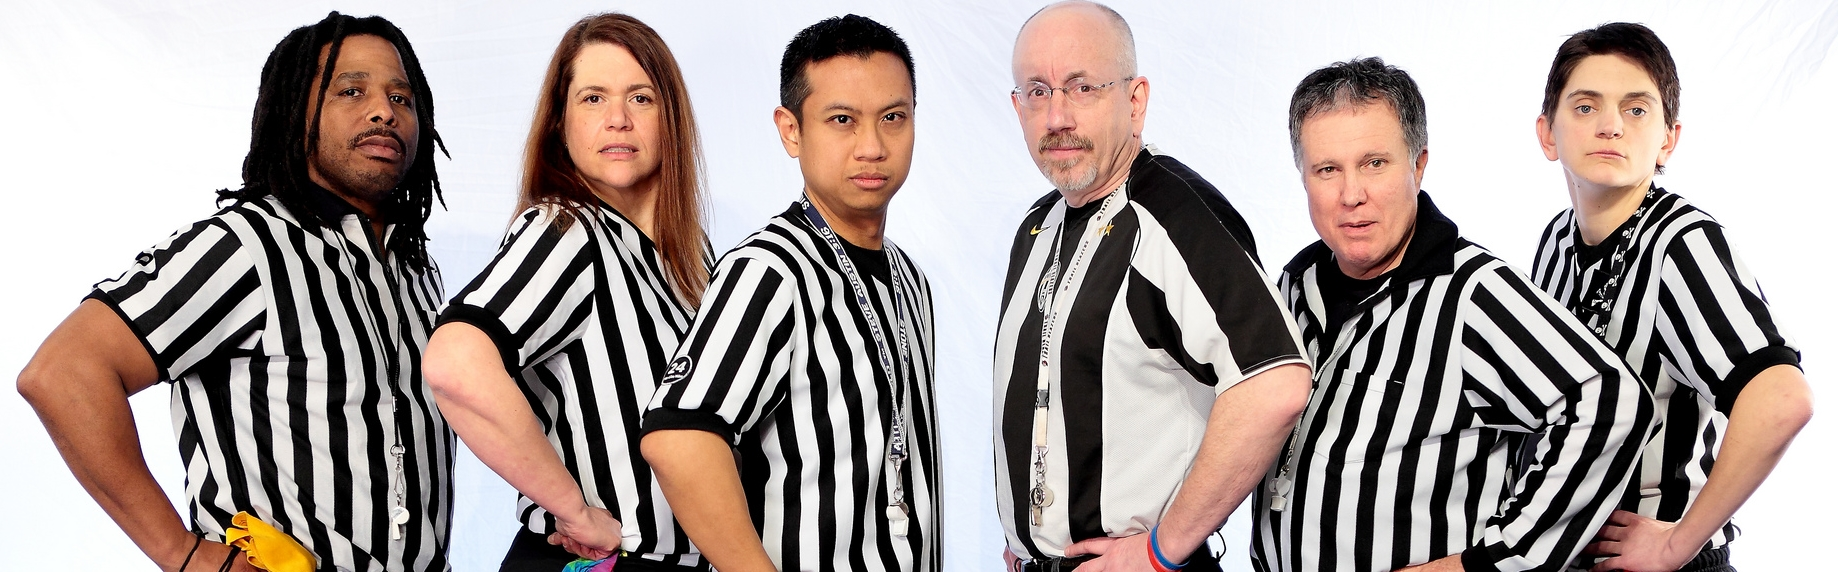 Comedysportz® is clean - a show for everyone. These FOLKS make it their job to keep that promise to our fans. Clean and hilarious!